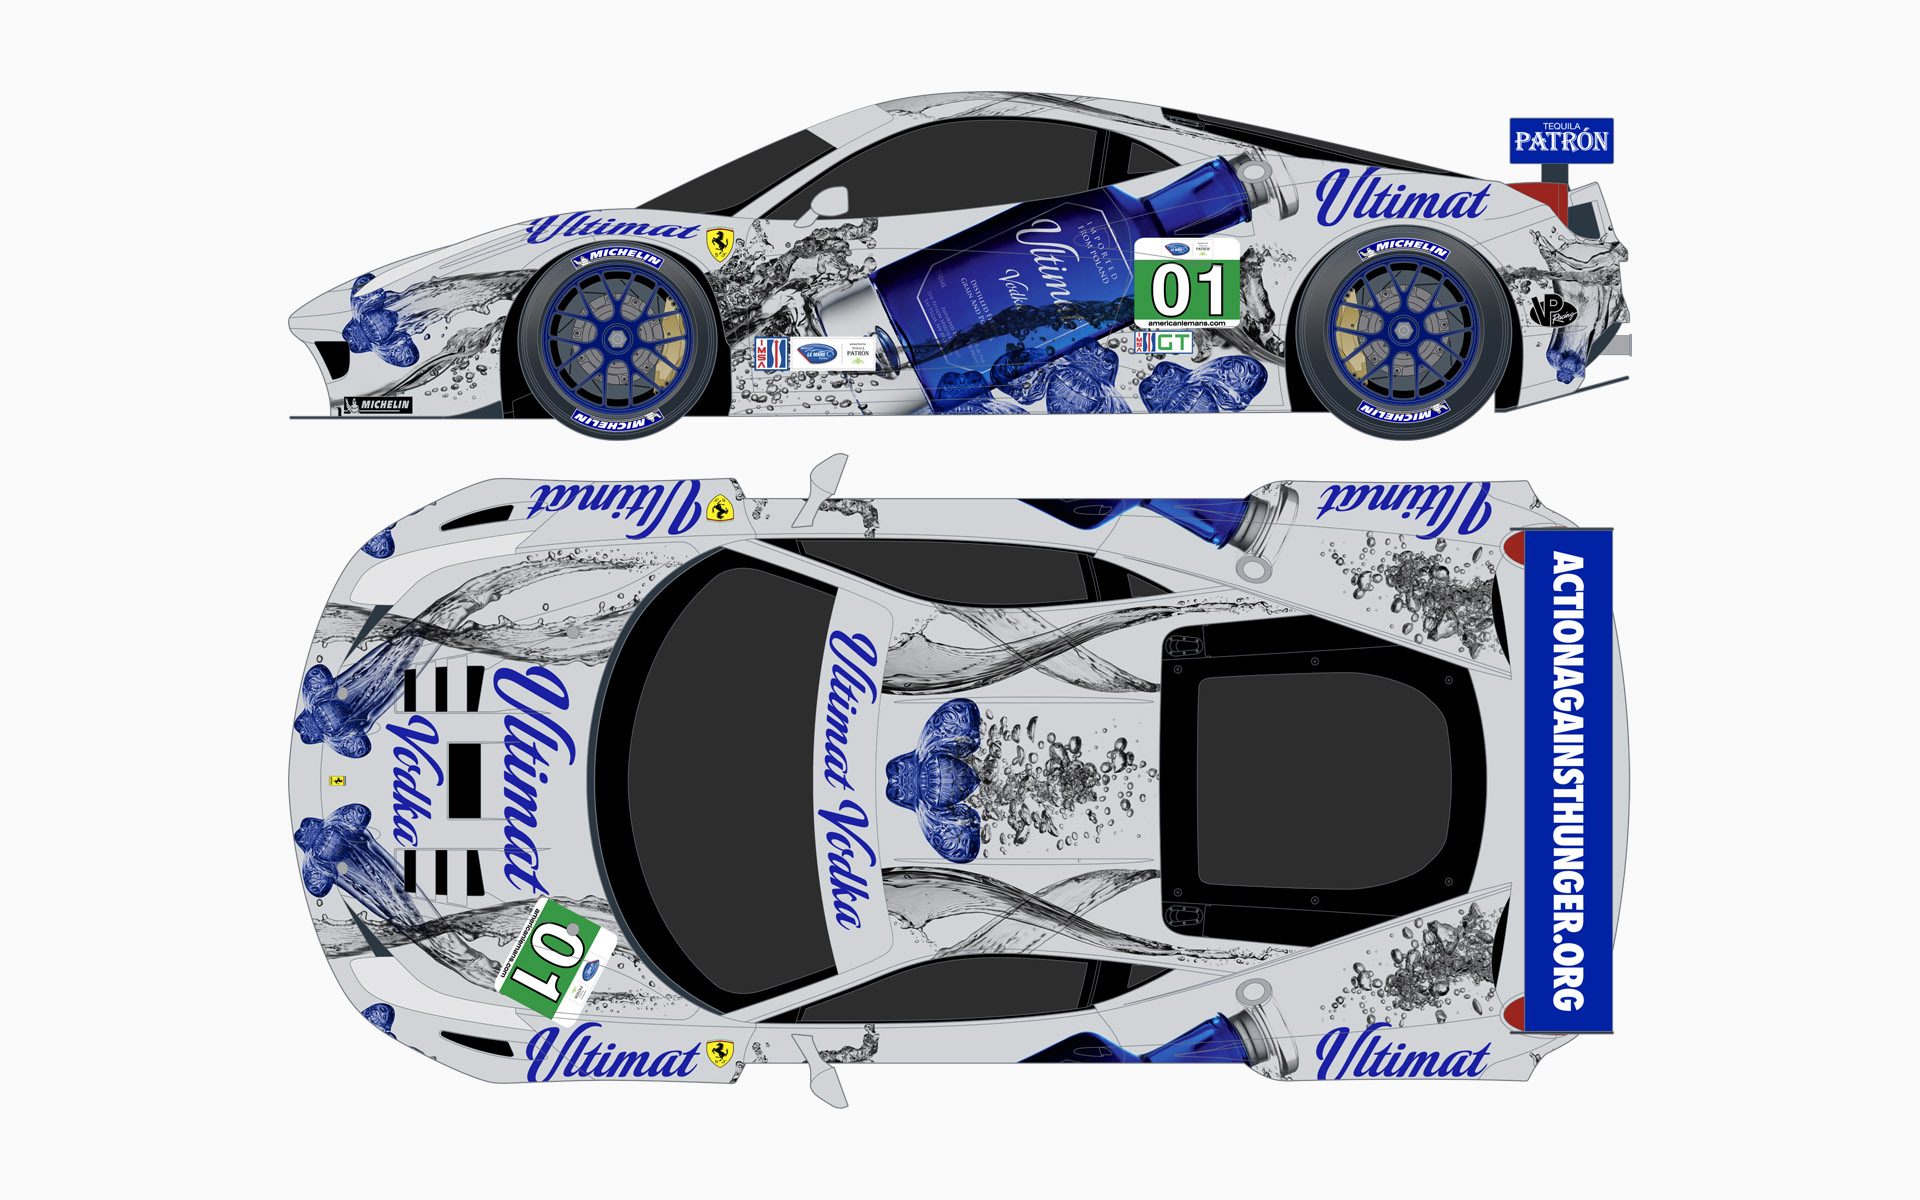 Extreme Speed Motorsports Ultimat Vodka Ferrari 458 GT Livery Elevations